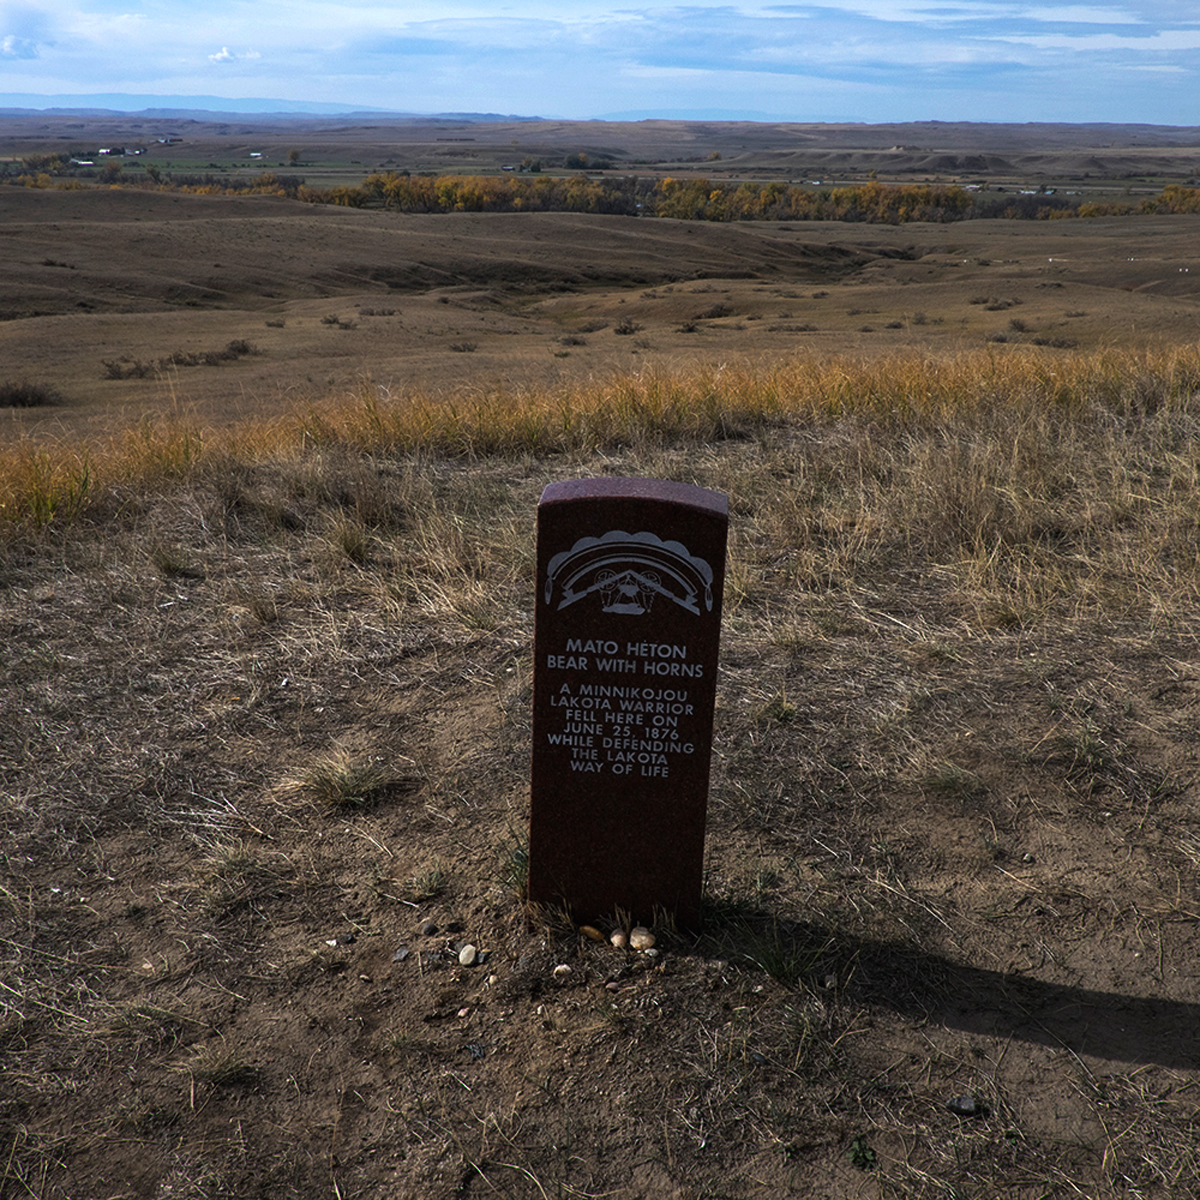 Memorial Marker for Lakota Warrior, Little Bighorn Battlefield Memorial, Hardin, Montana